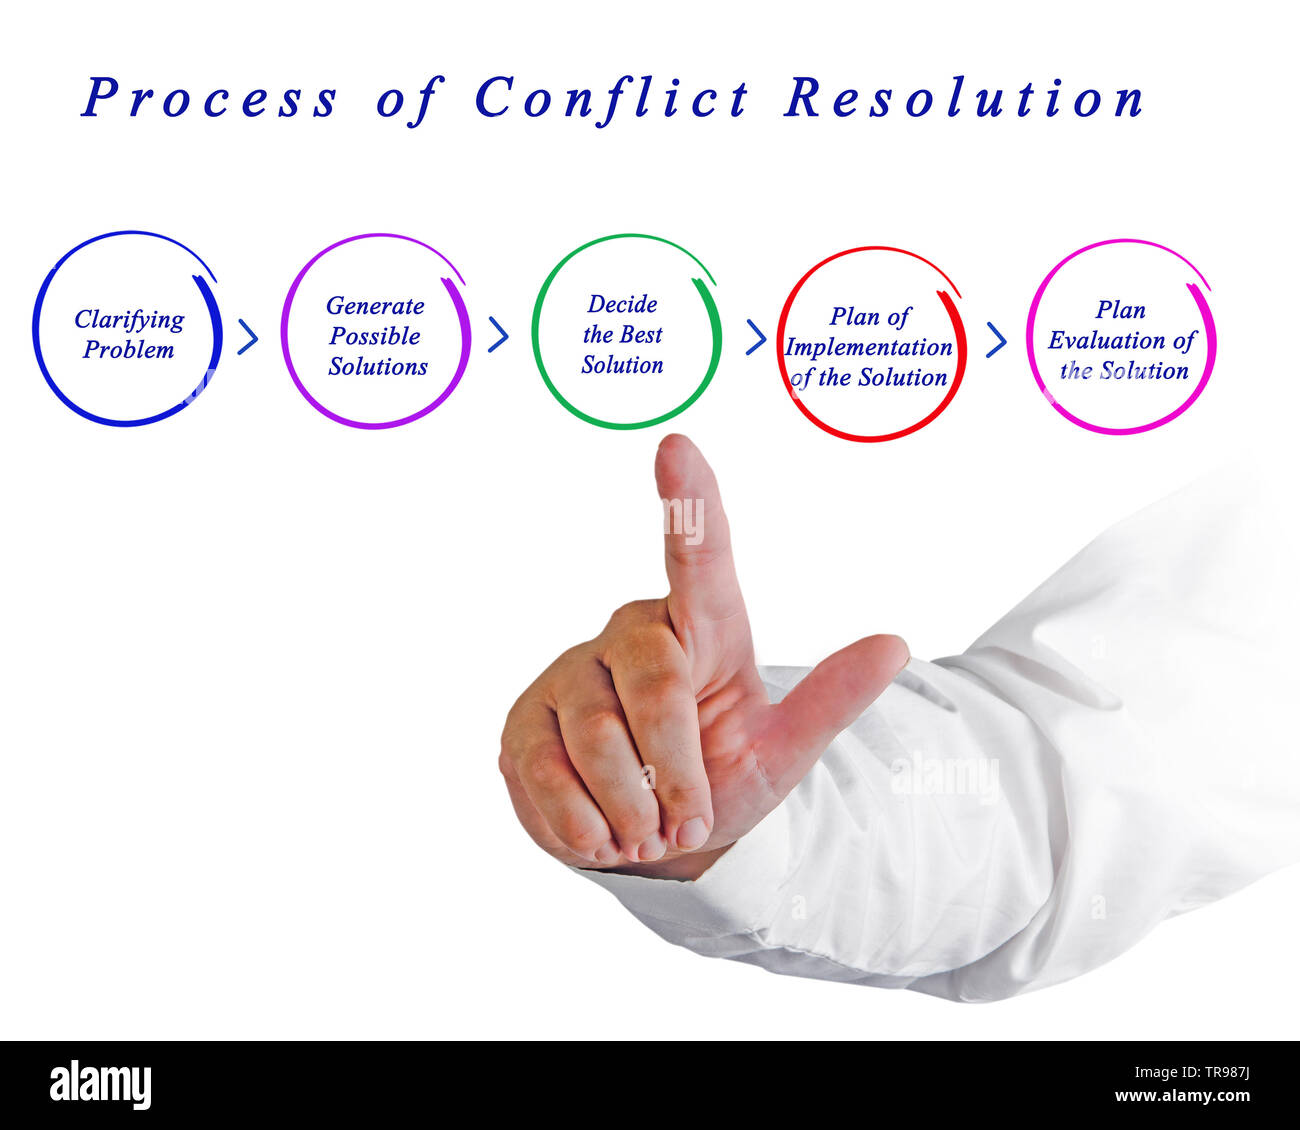 Process Of Conflict Resolution Stock Photo